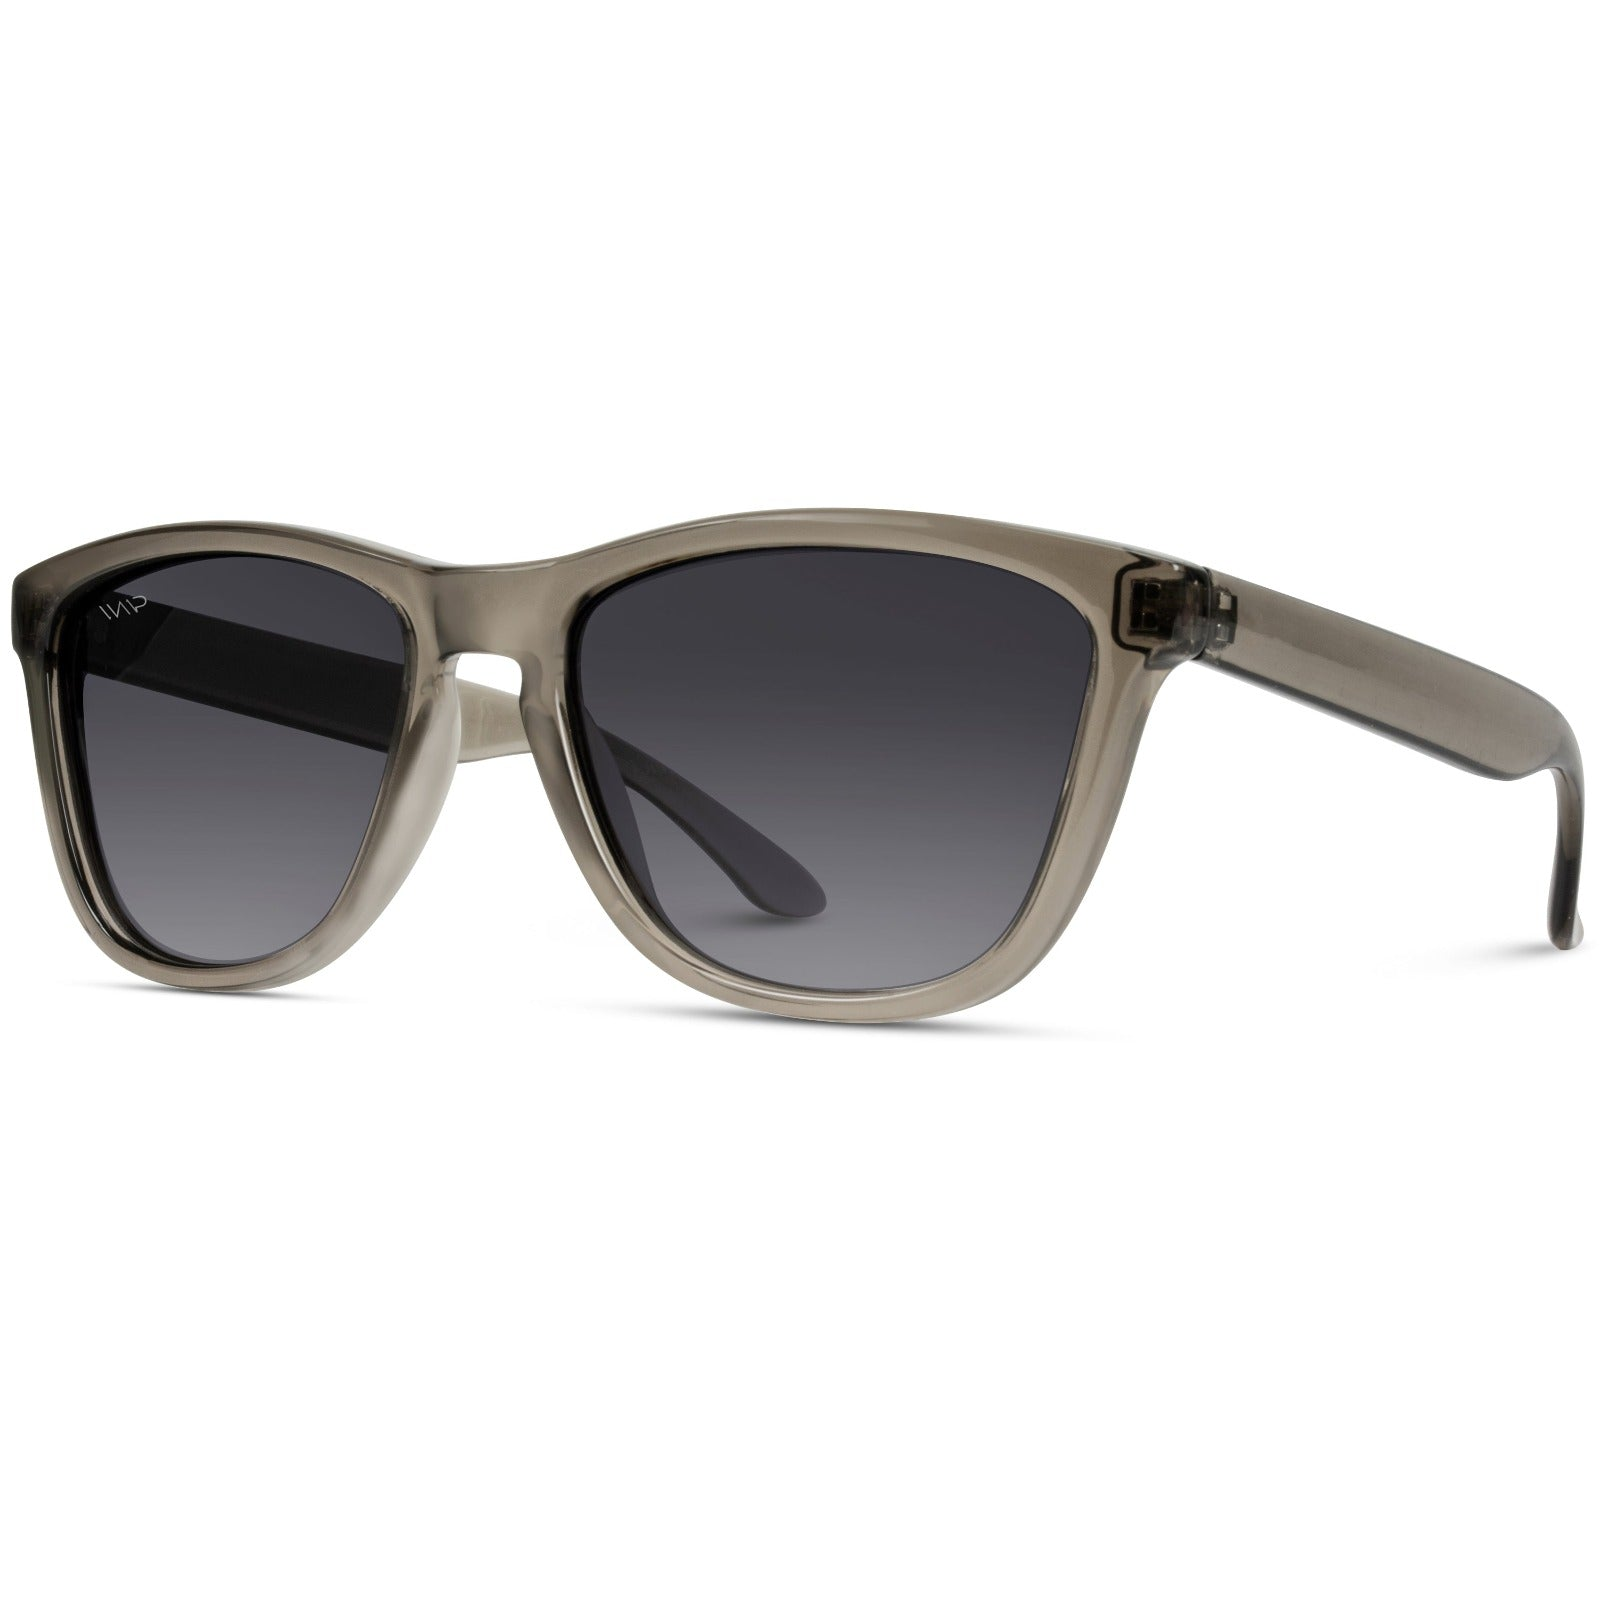 Ocean°2 Square Horn Rimmed Polarized Classic Modern Look Sunglasses